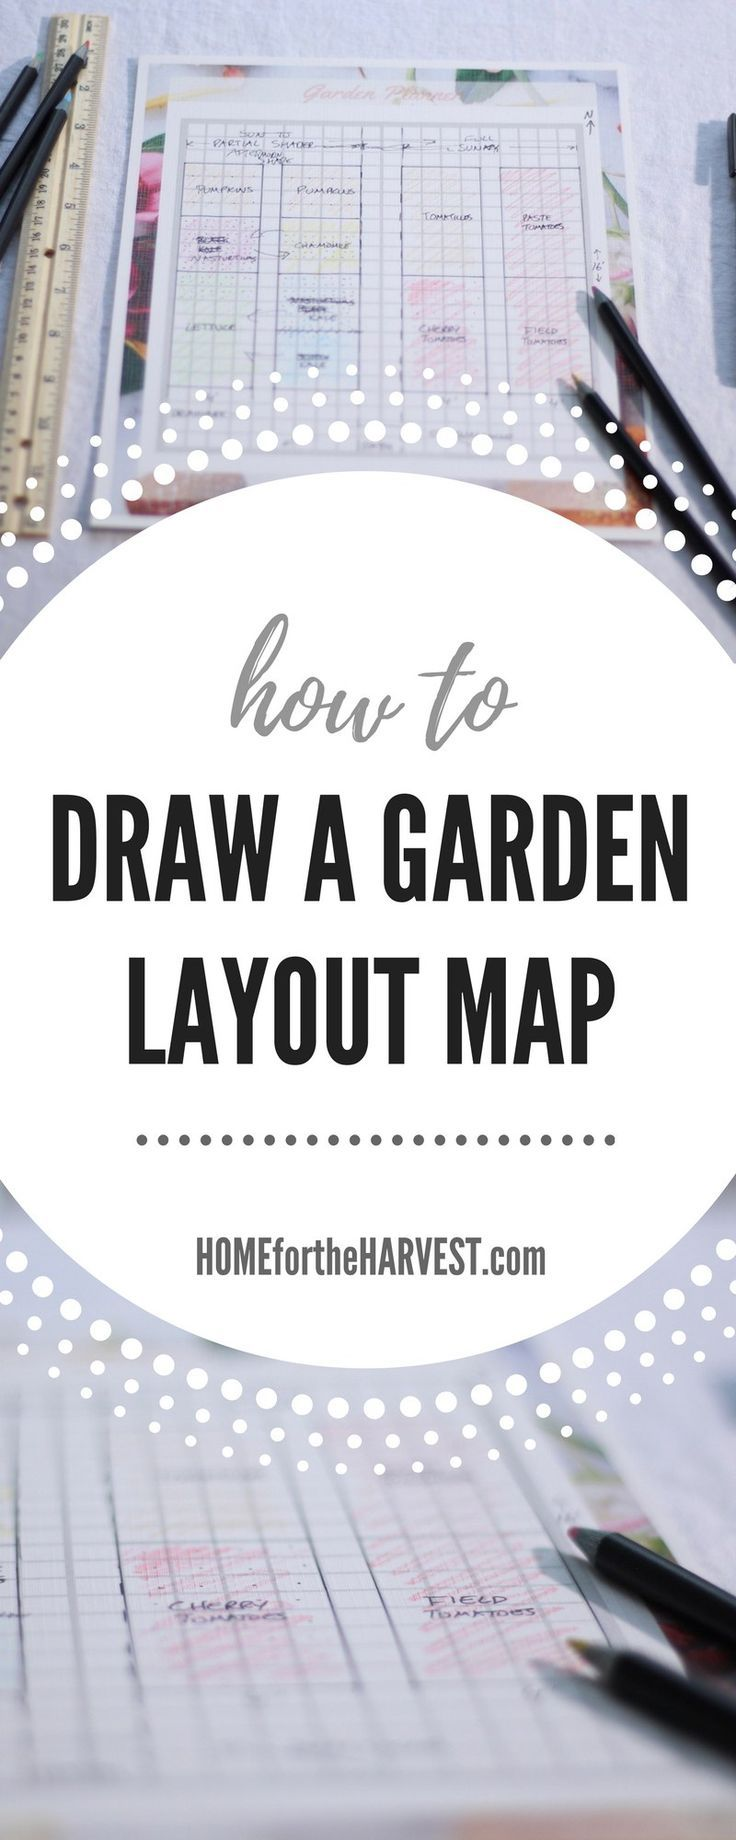 Plan Your Garden Layout: How to Draw a Remarkably Effective Garden Good Aesthetic Design Keyhole Garden Plan on annual garden plans, straw bale garden plans, survival garden plans, deer resistant garden plans, build garden cart plans, flower garden plans, raised garden layout plans, gothic garden plans, butterfly garden plans, sensory garden plans, raised garden bed plans, rectangle garden plans, small garden plans, front garden plans, classic garden plans, window garden plans, chinese garden plans, kitchen garden plans, round garden plans, woodland garden plans,